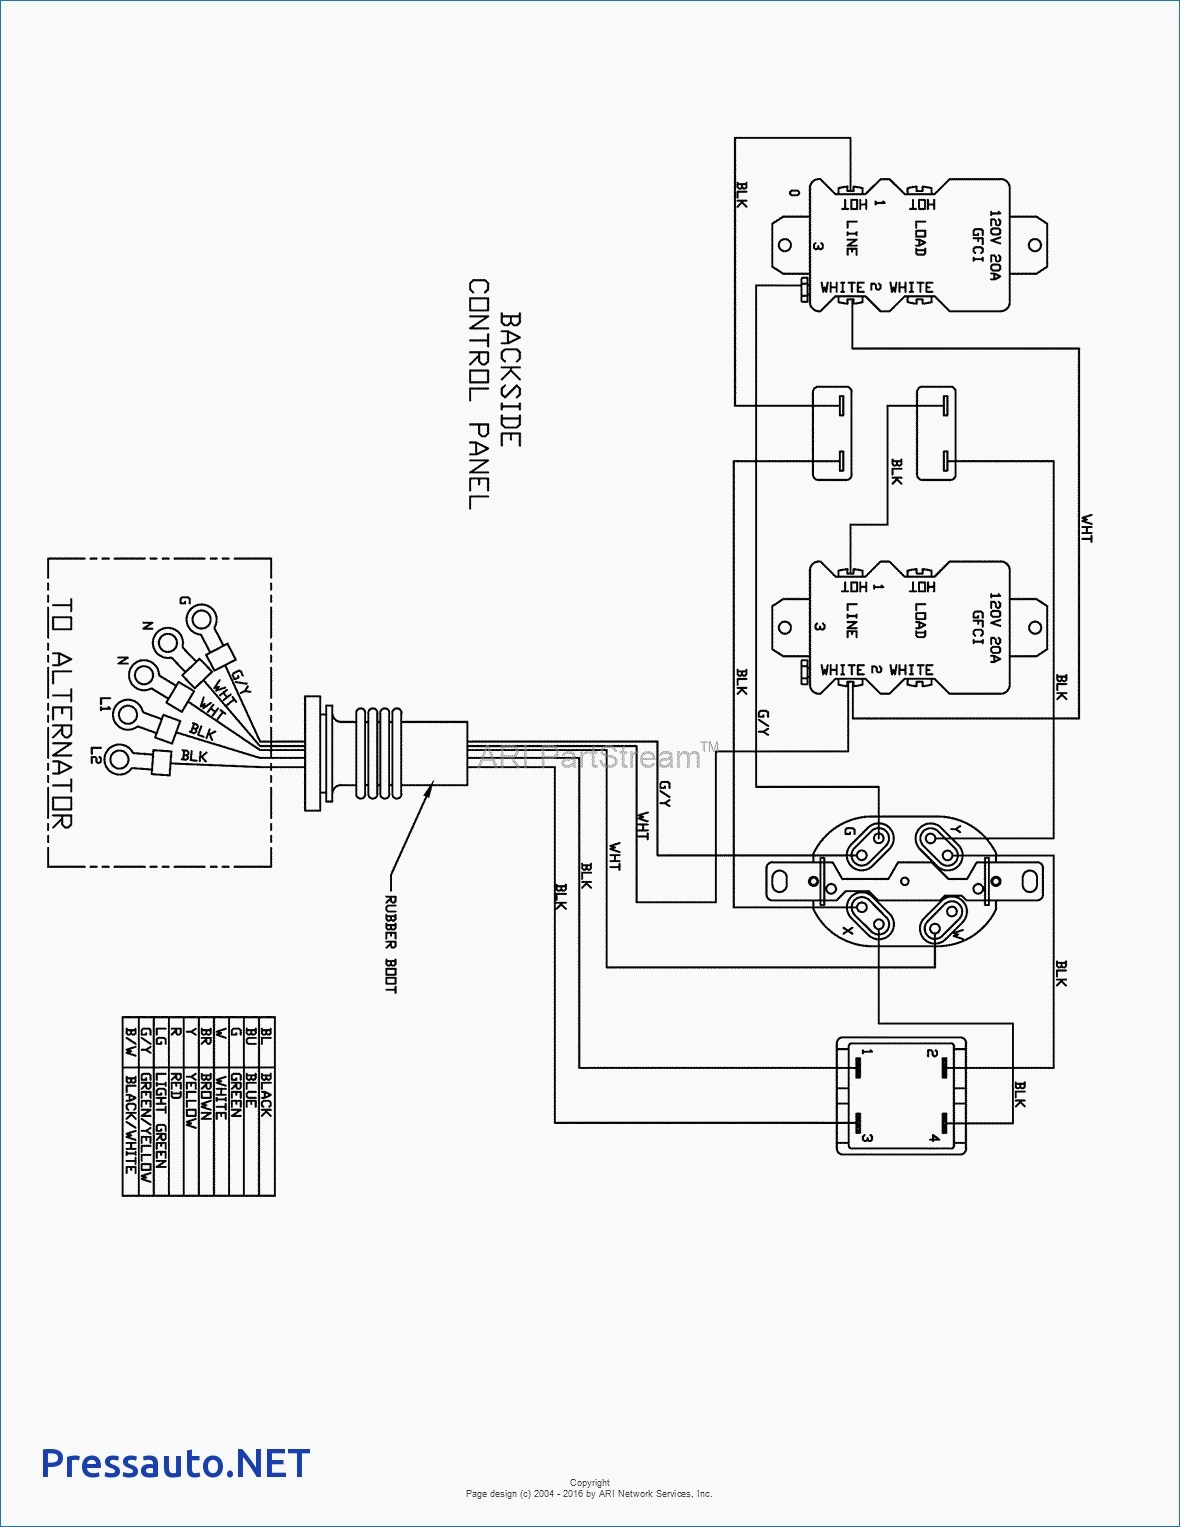 DIAGRAM] Yamaha Generator Wiring Diagram FULL Version HD Quality Wiring  Diagram - FT5WIRING.CONCESSIONARIABELOGISENIGALLIA.ITconcessionariabelogisenigallia.it